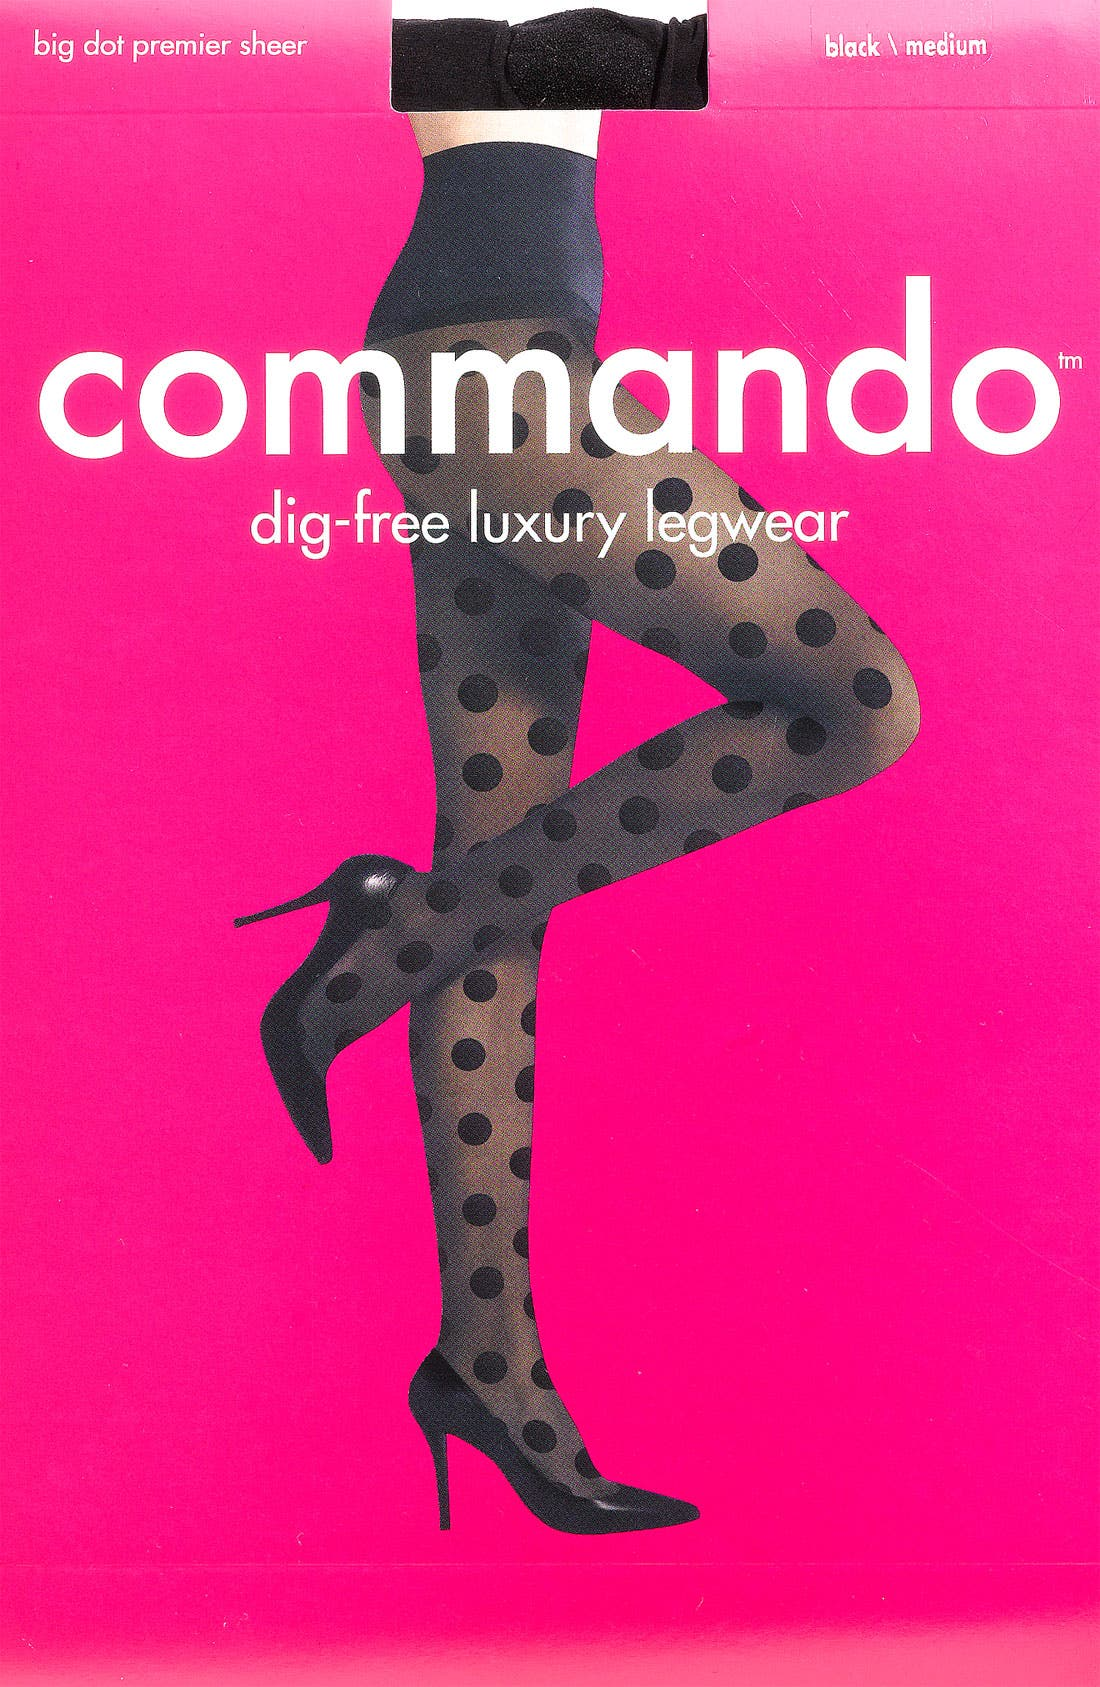 Alternate Image 2  - Commando 'Big Dot' Sheer Tights